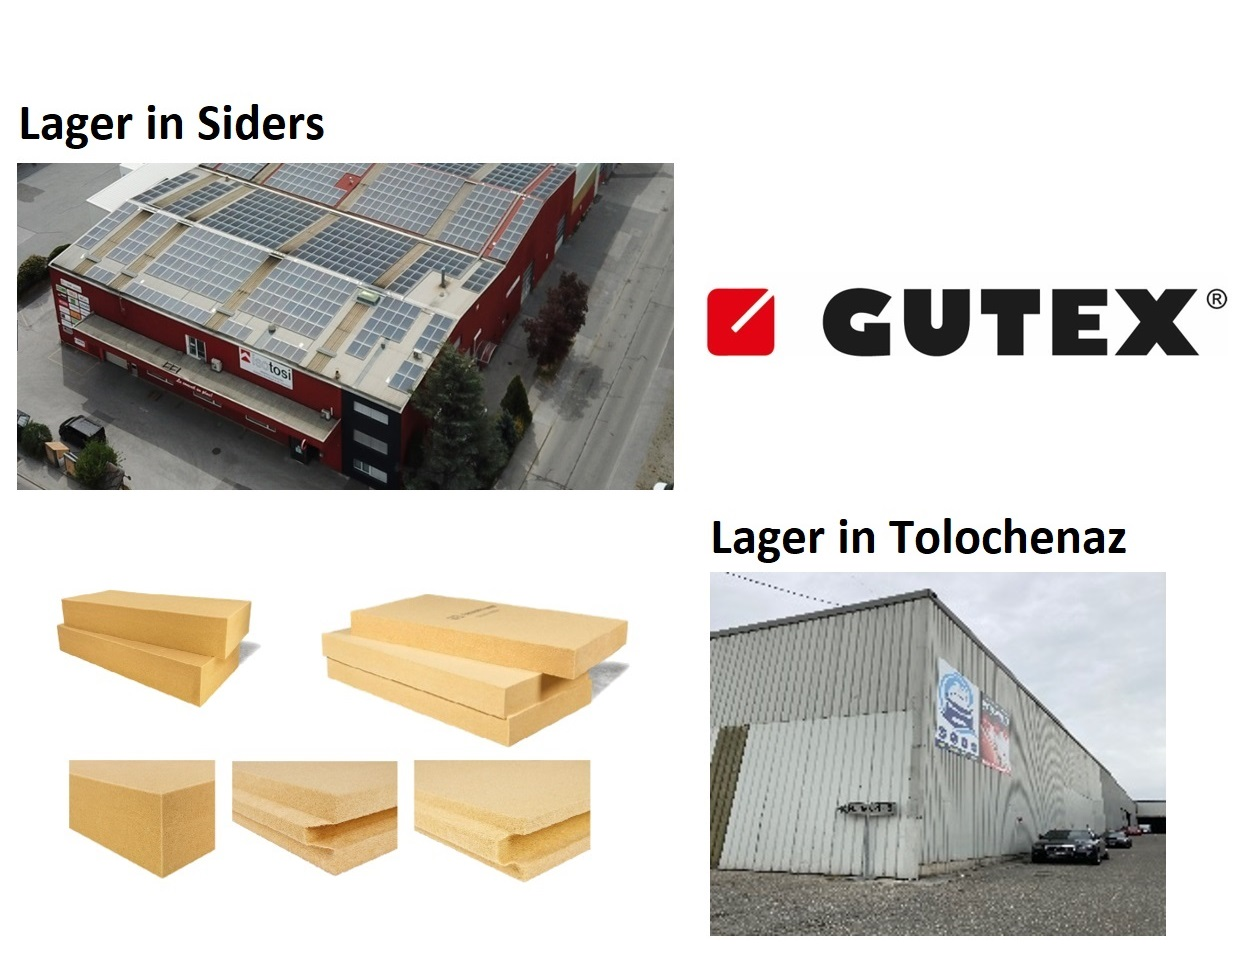 Gutex Lager